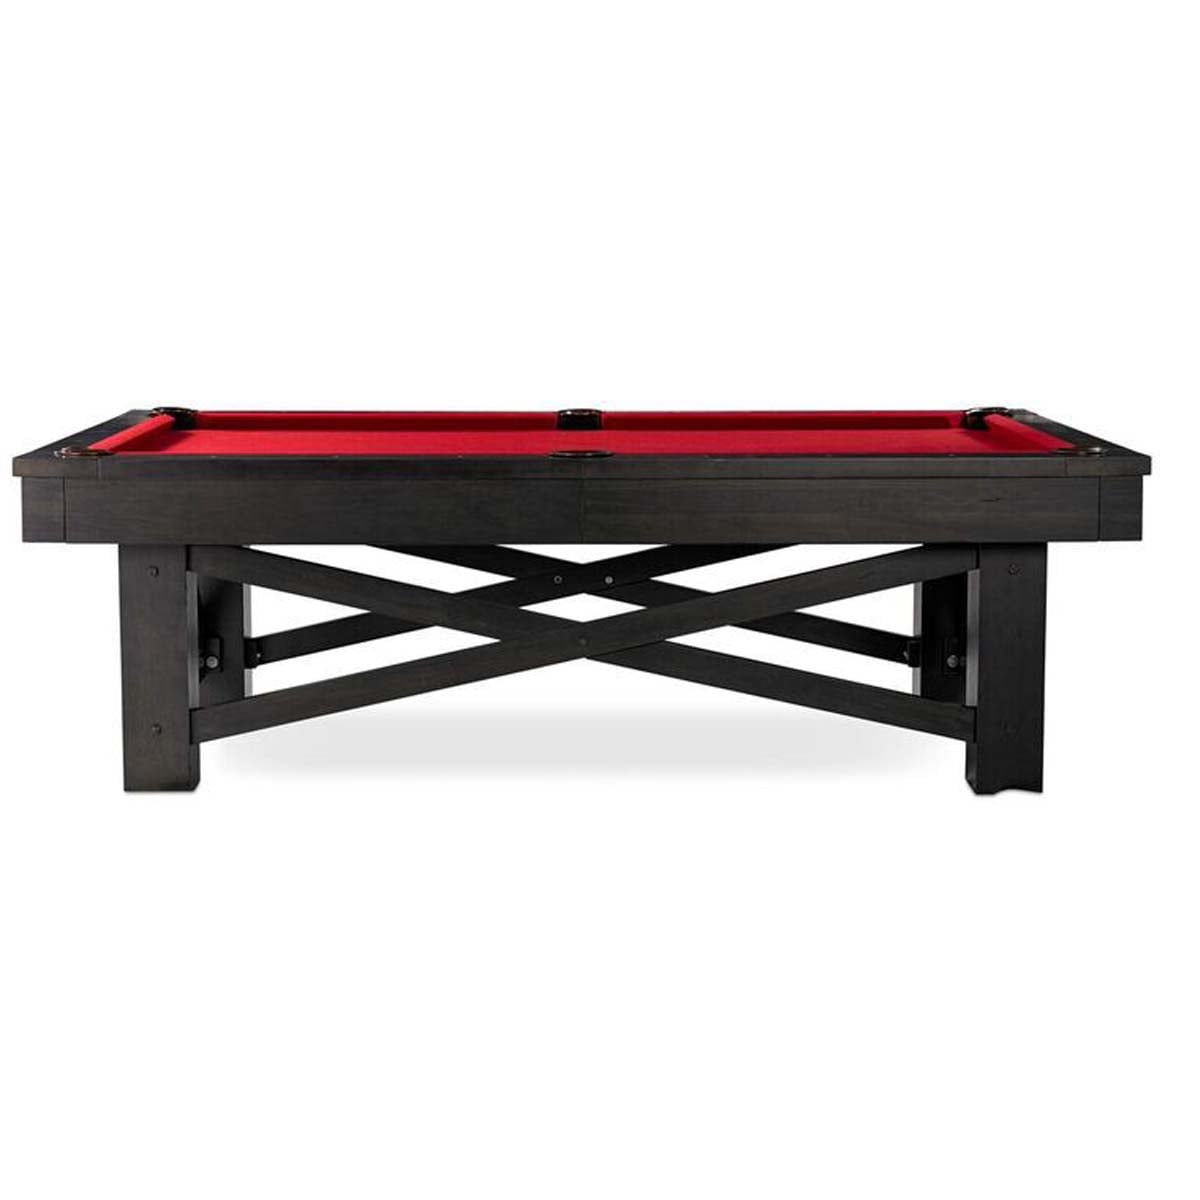 The Mccormick Pool Table By Plank Amp Hide Family Leisure